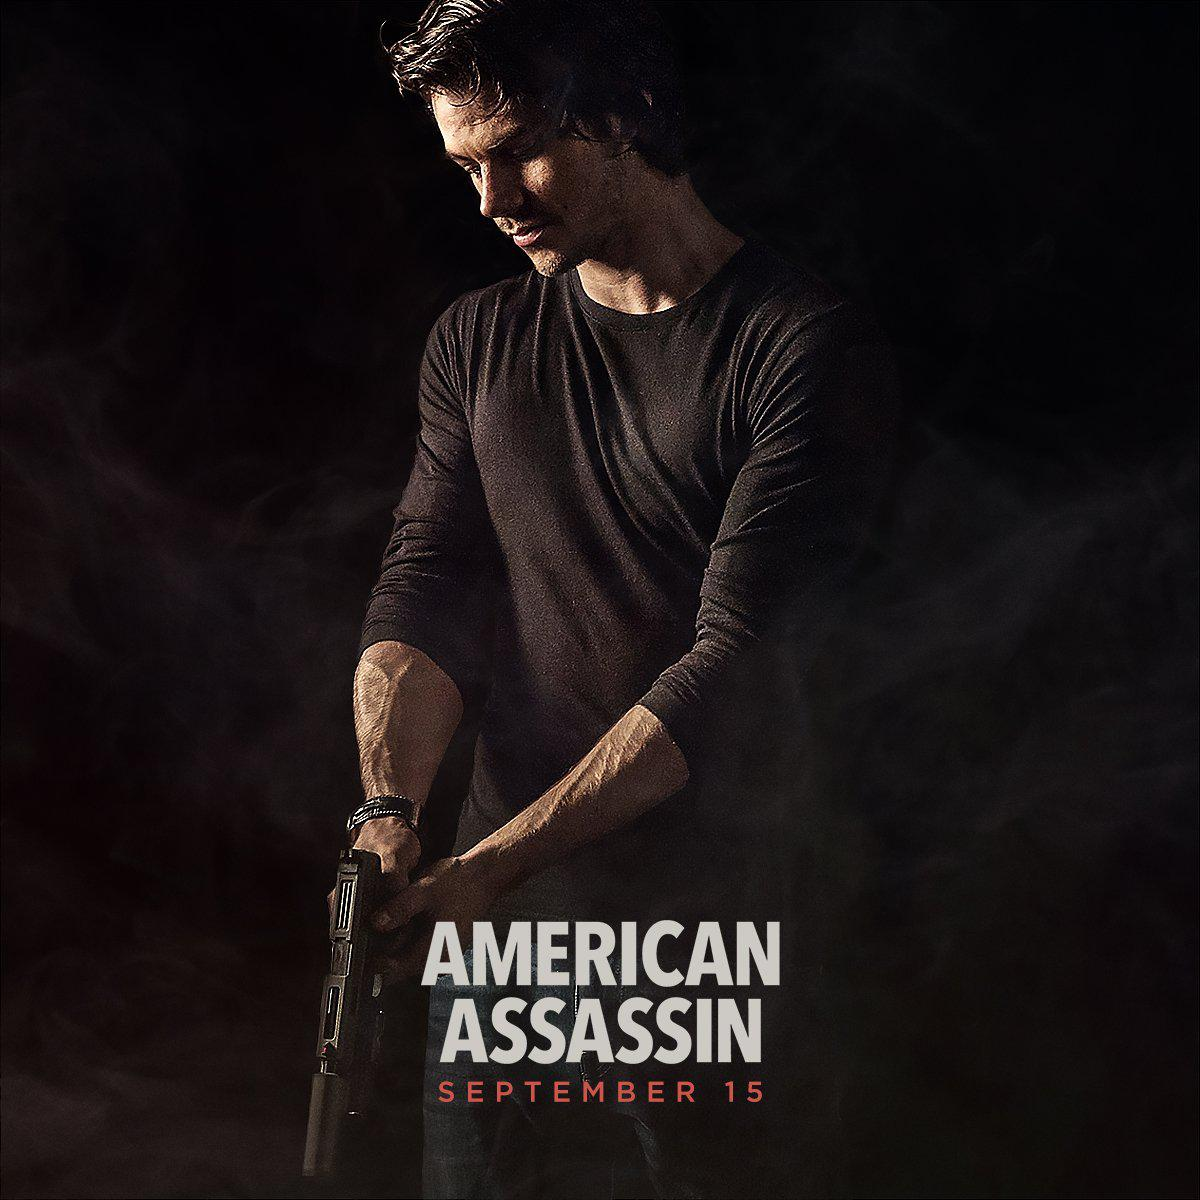 Film - American Assassin - Dylan O Brien - Michael Keaton - action film